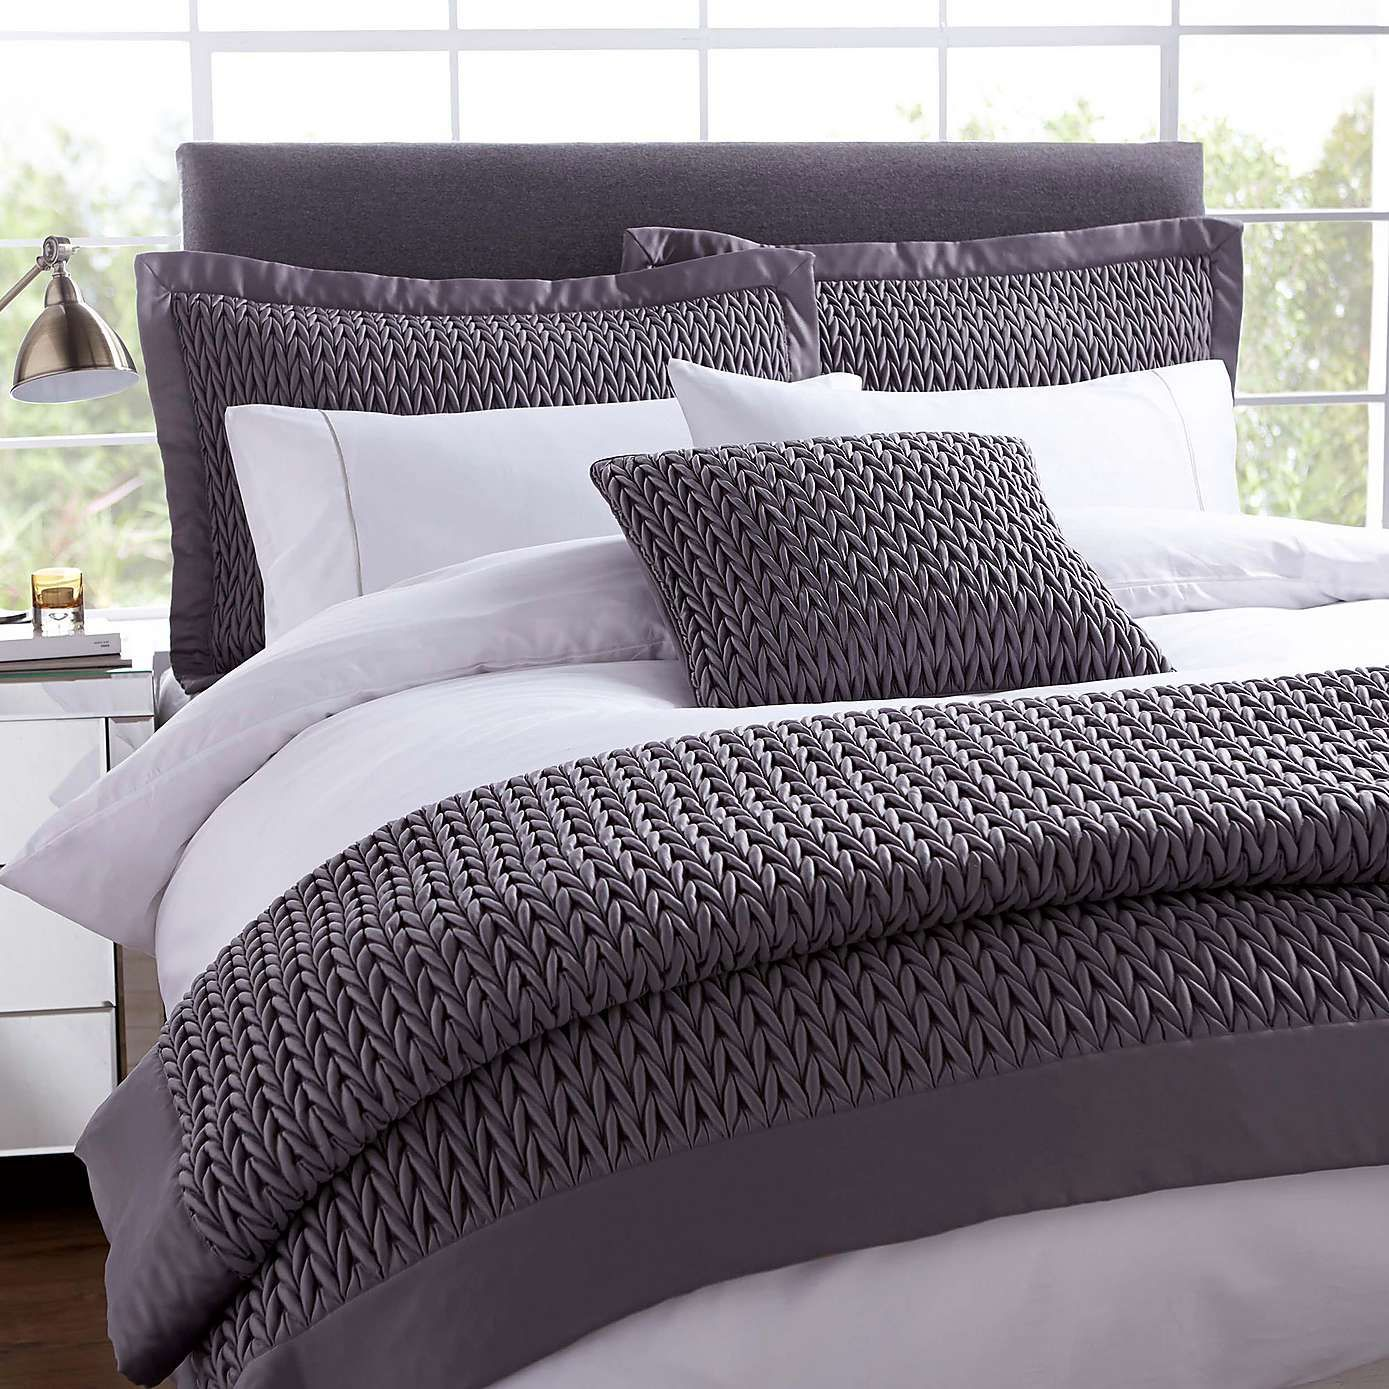 hotel charcoal piccadilly bedspread | dunelm | decorating new home